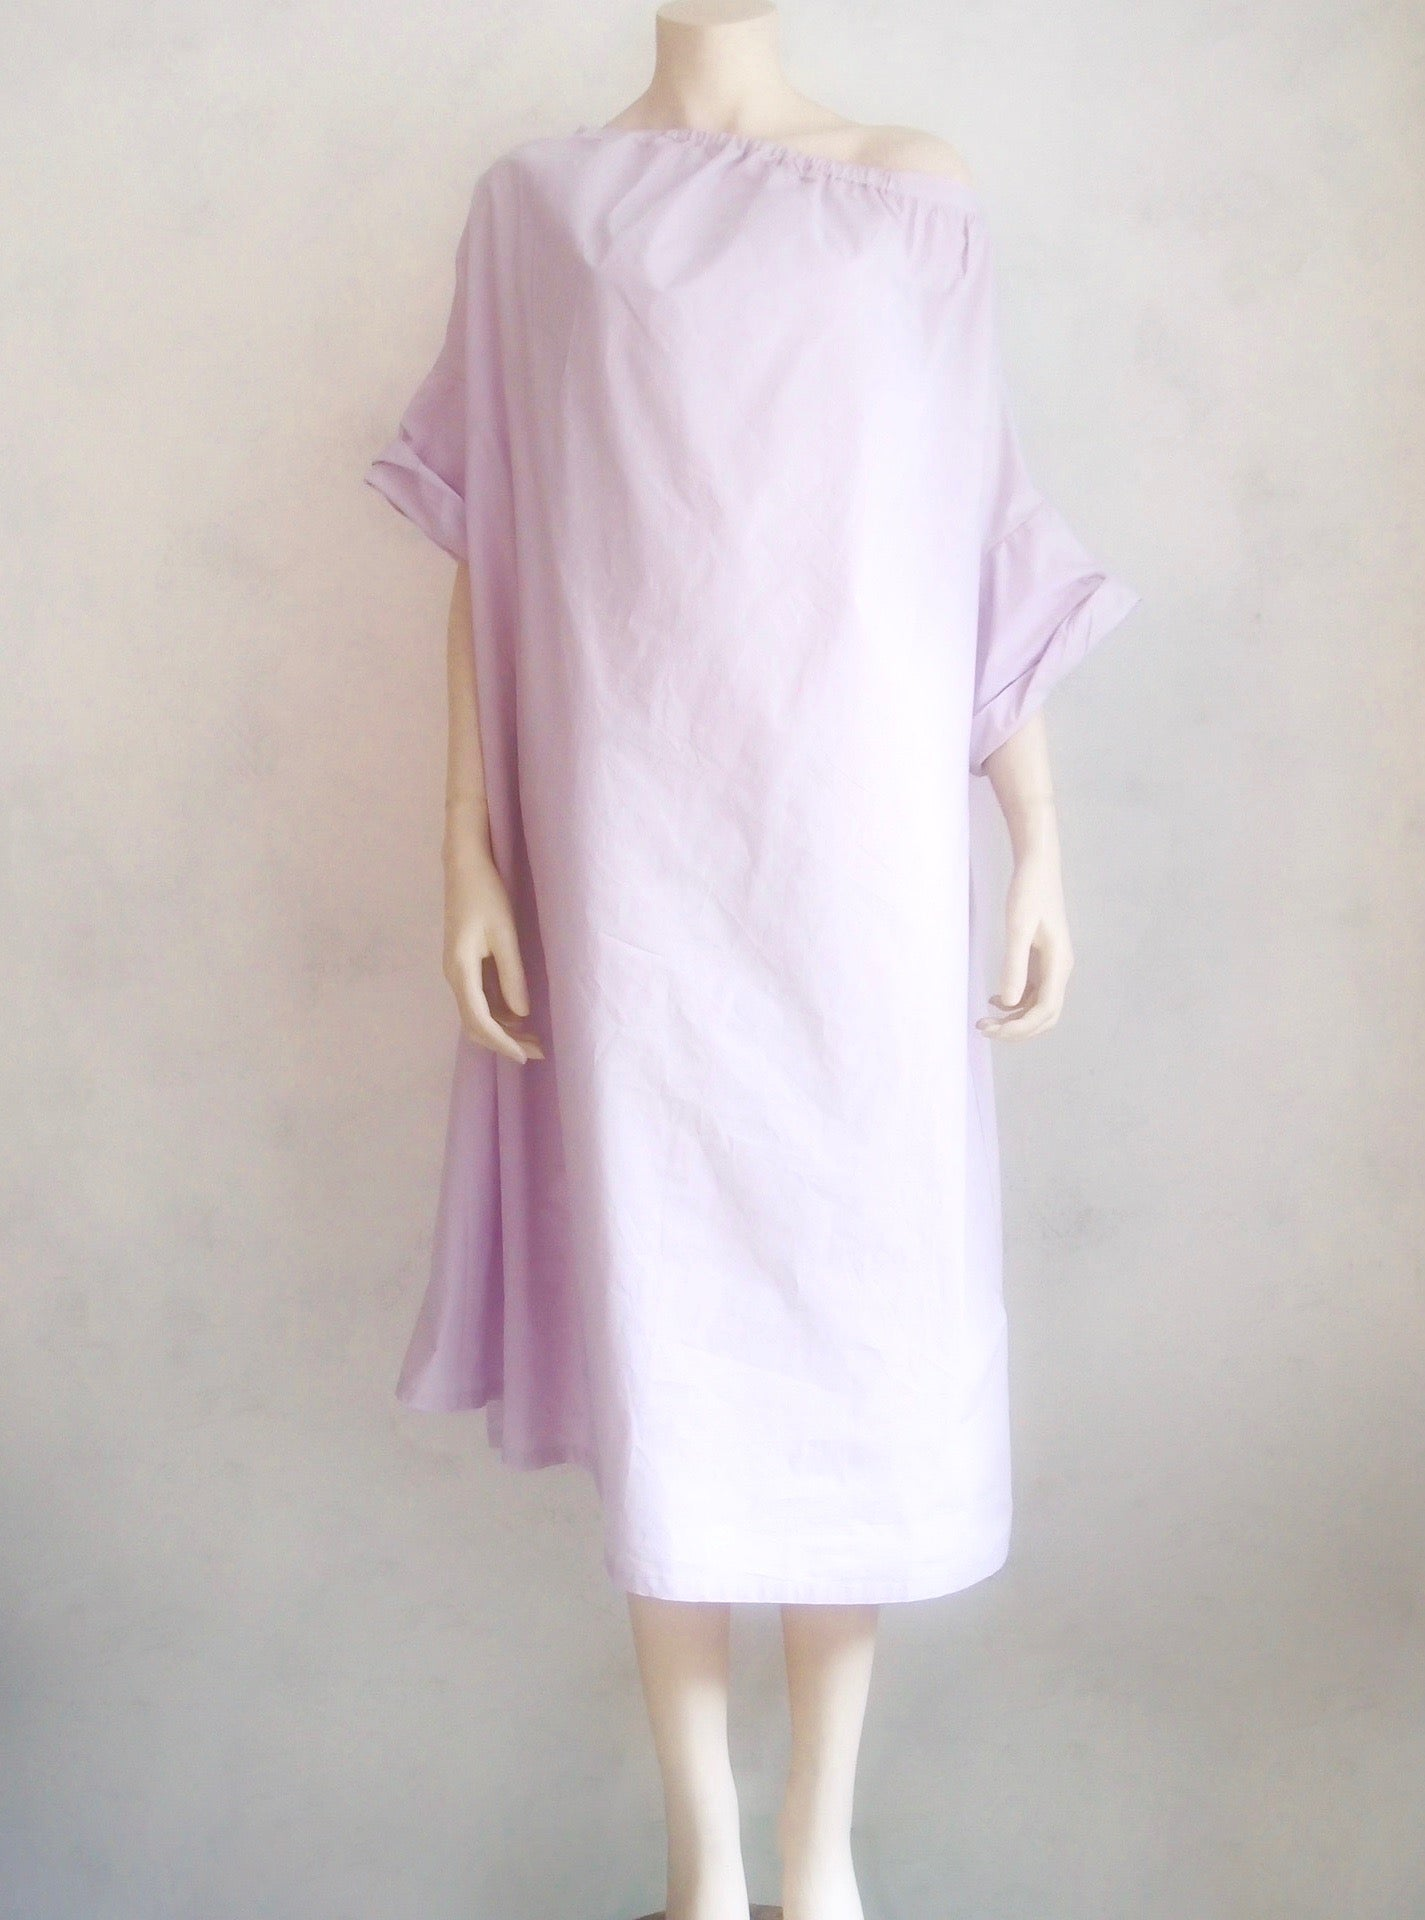 humanoid crispy cotton dress